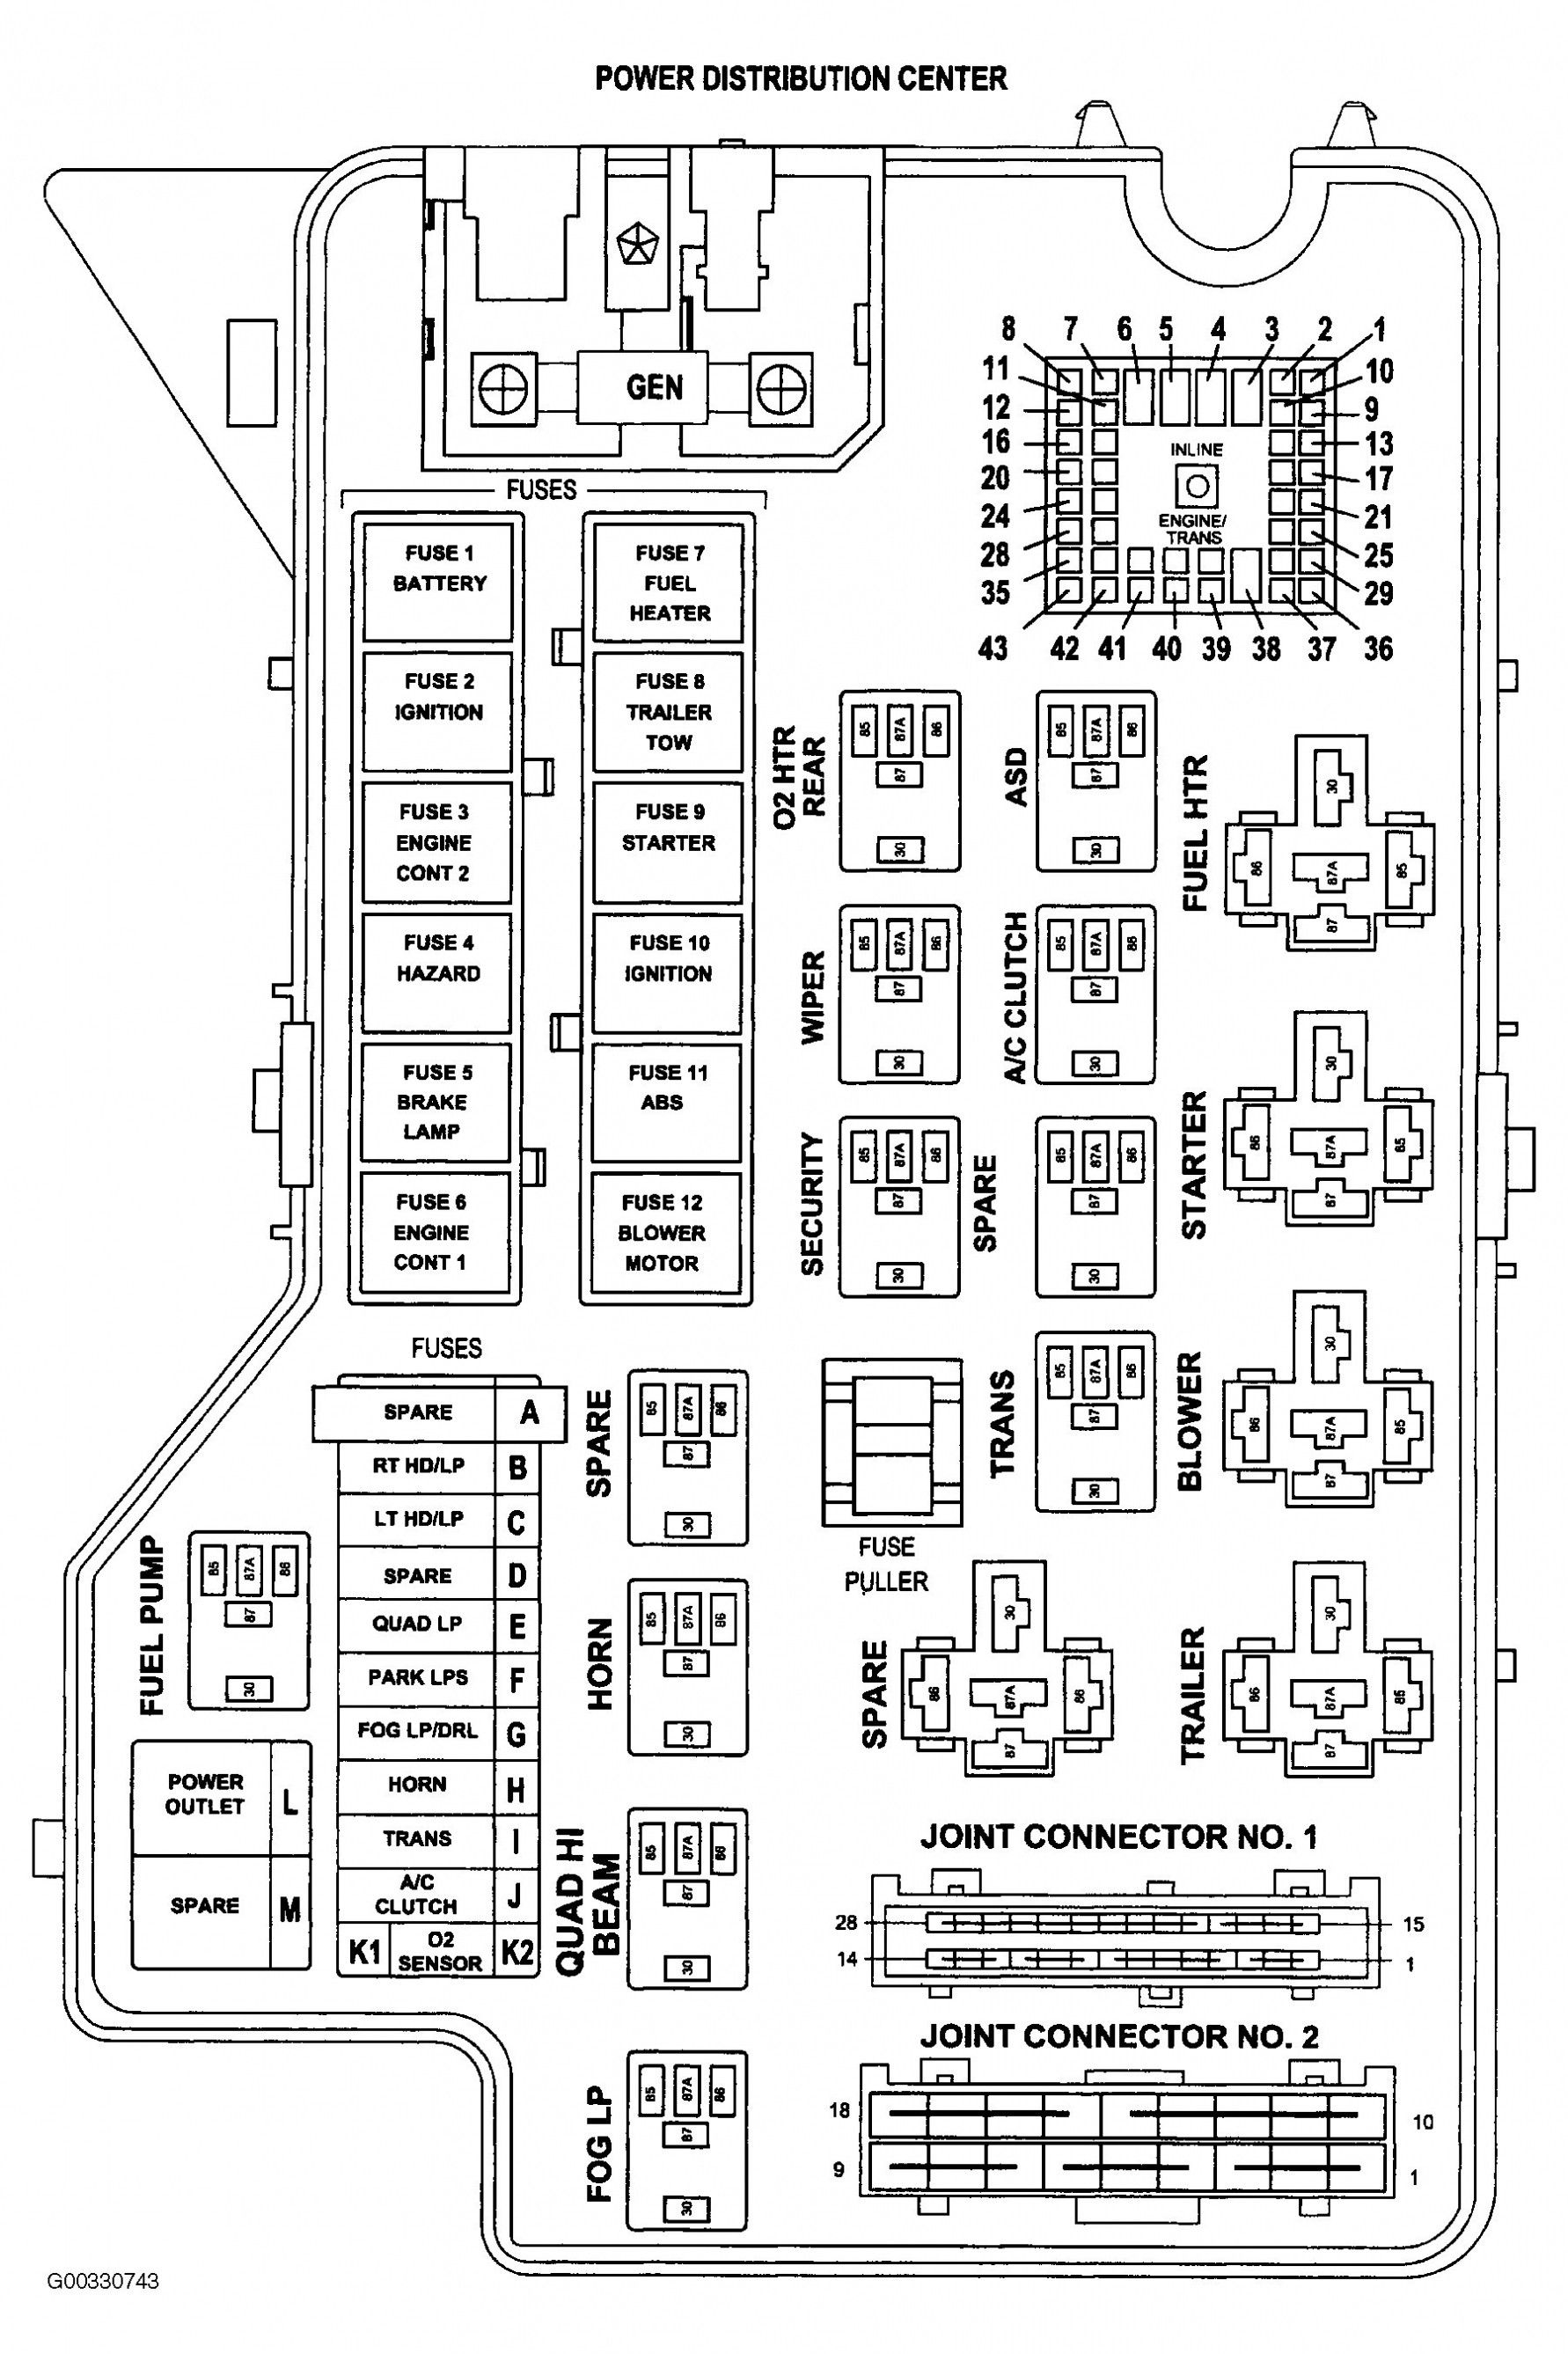 New 2011 Dodge Ram 1500 Radio Wiring Diagram #diagram #diagramsample  #diagramtemplate #wiringdiagram #diagramchart #w… | Dodge ram 1500, Dodge  ram, Dodge trucks ramPinterest